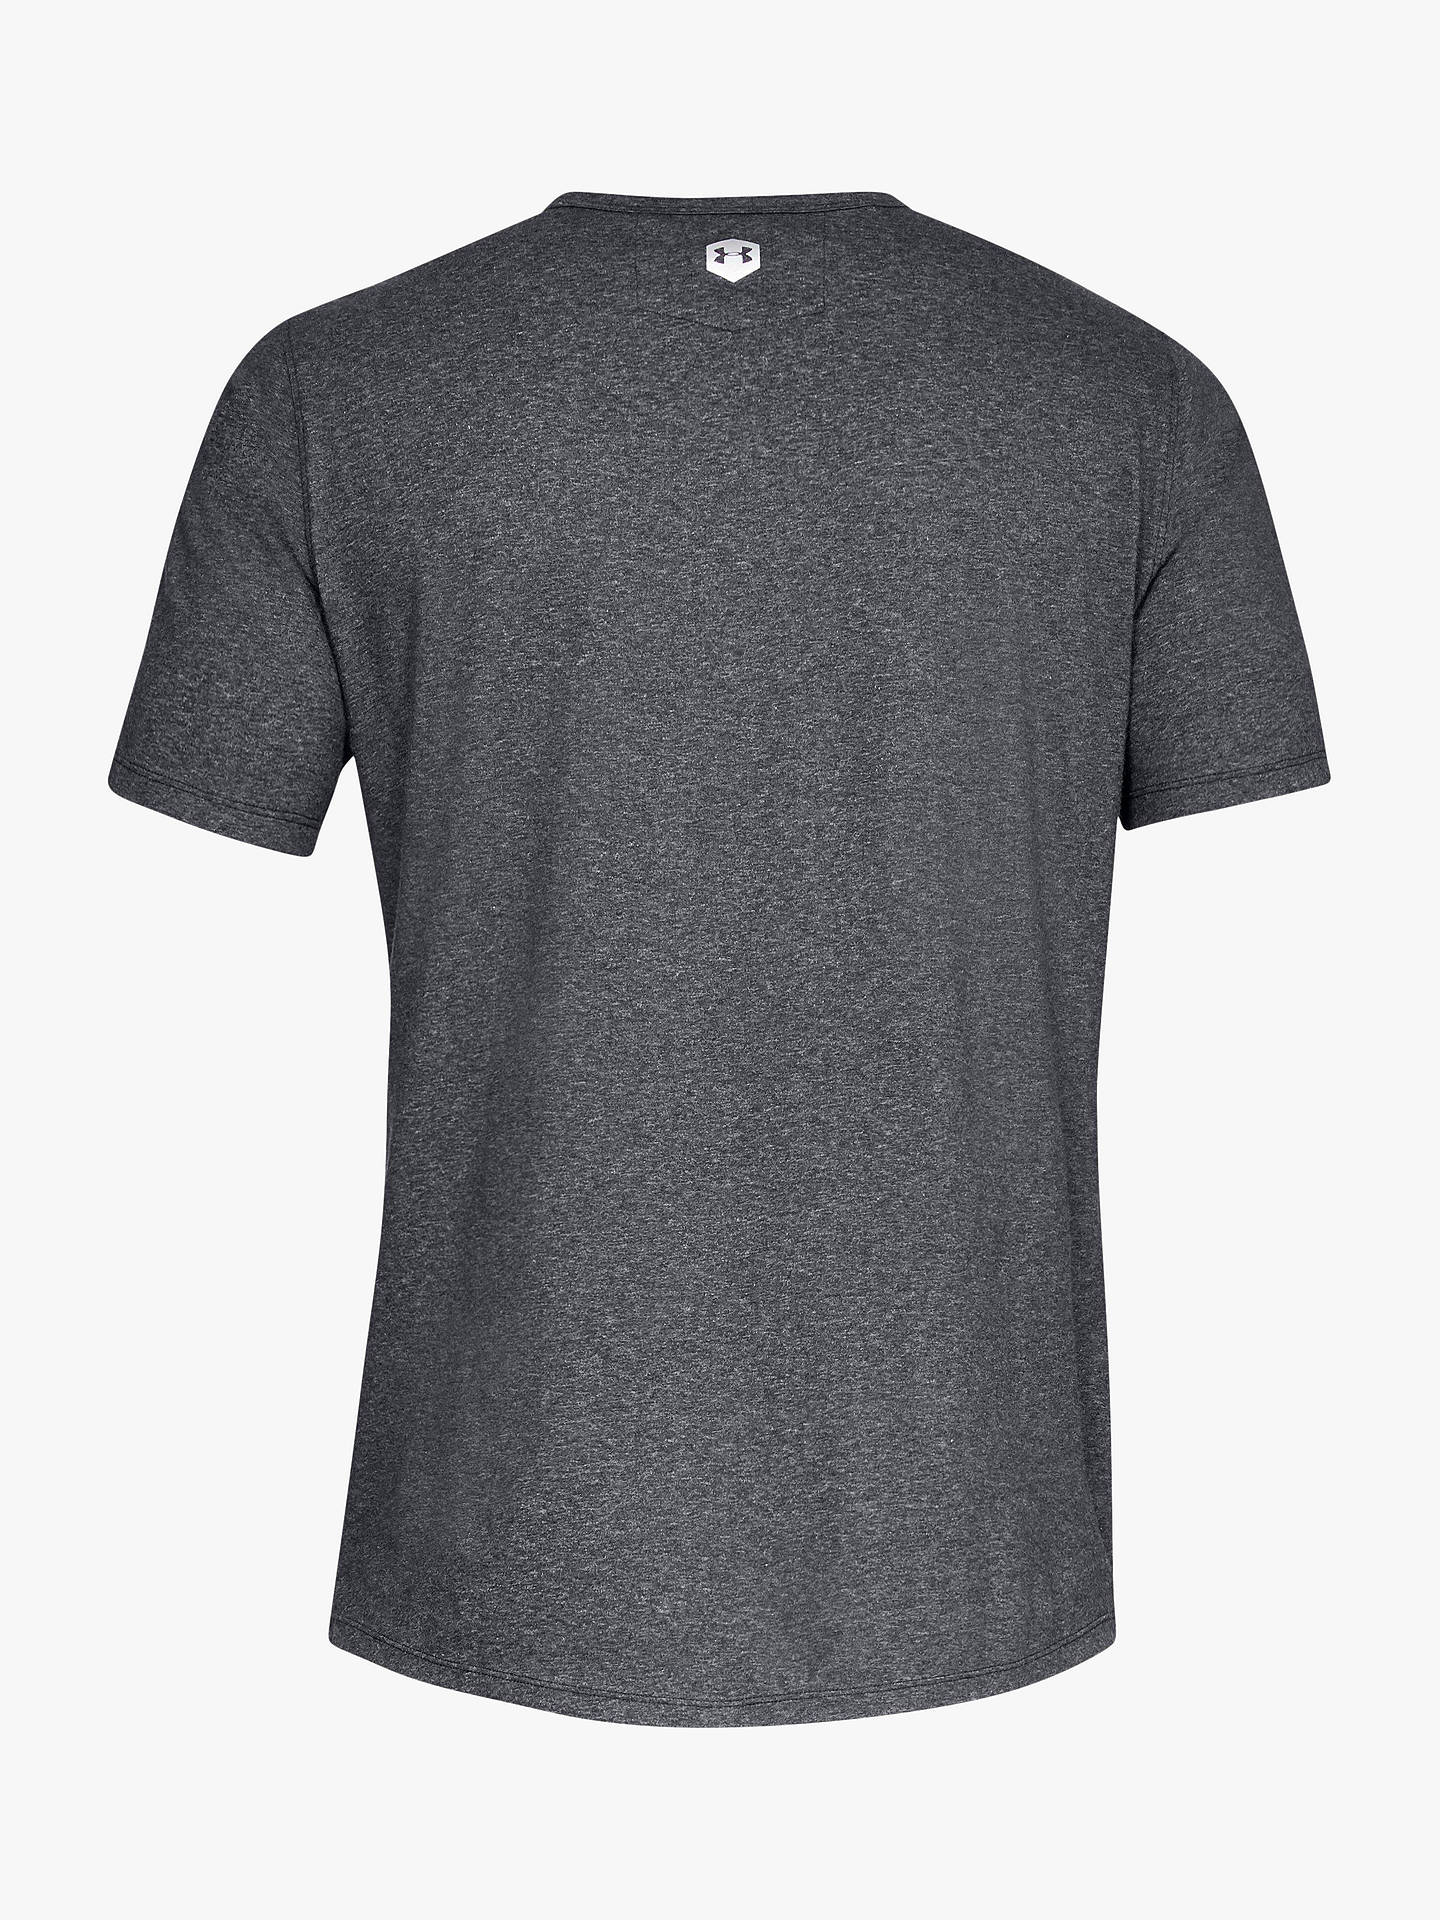 BuyUnder Armour Athlete Recovery Sleepwear T-Shirt 5a8746d7c